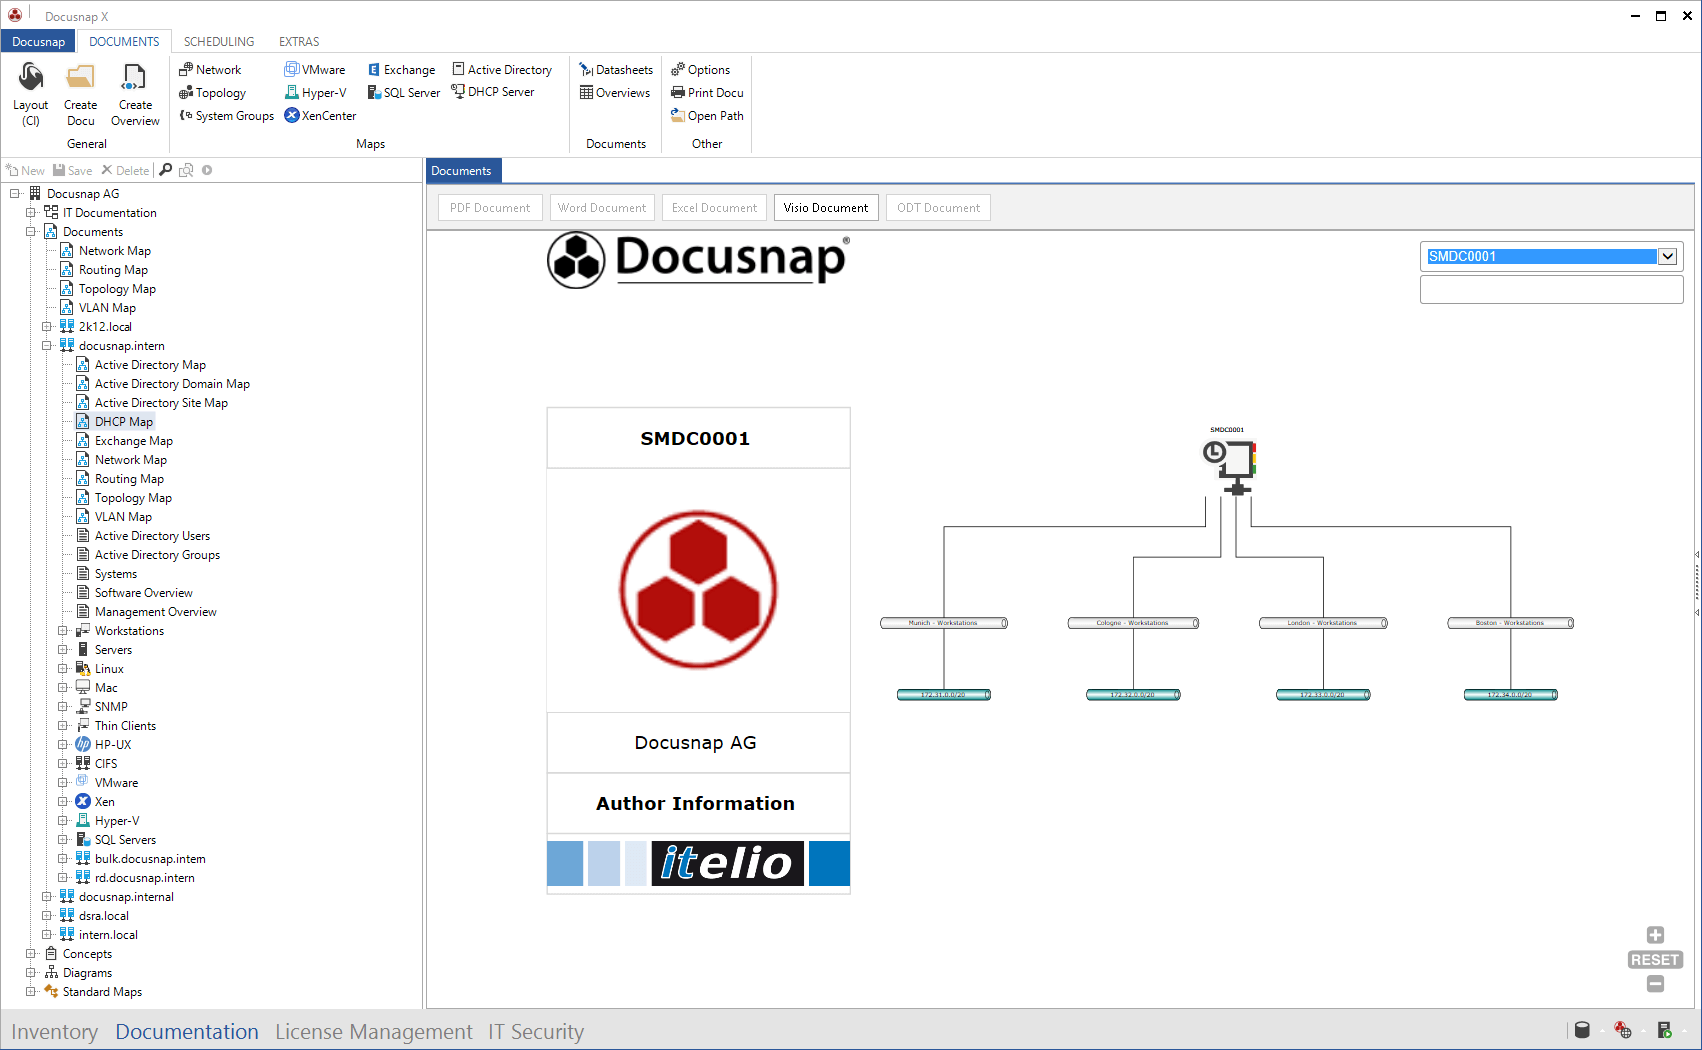 DHCP Map